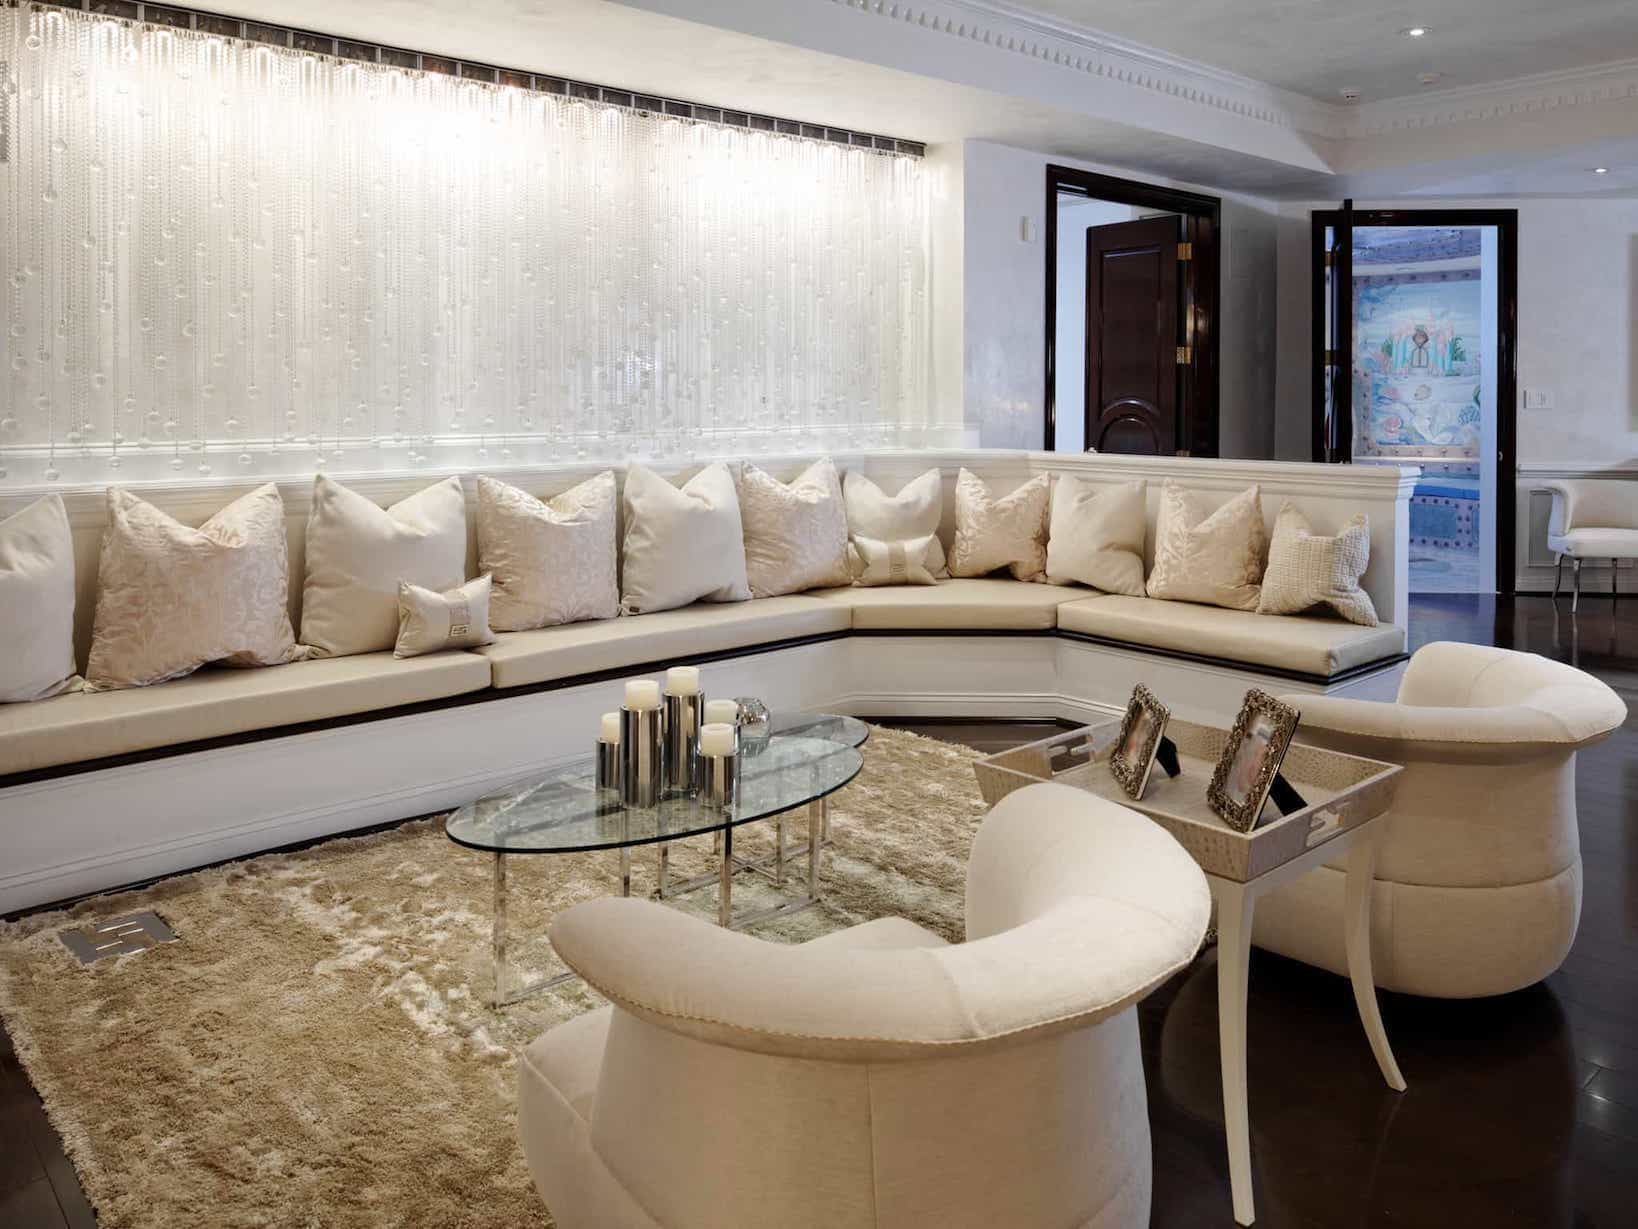 Luxury Shag Rug For Contemporary Sitting Room With Large Neutral Banquette (Image 7 of 15)